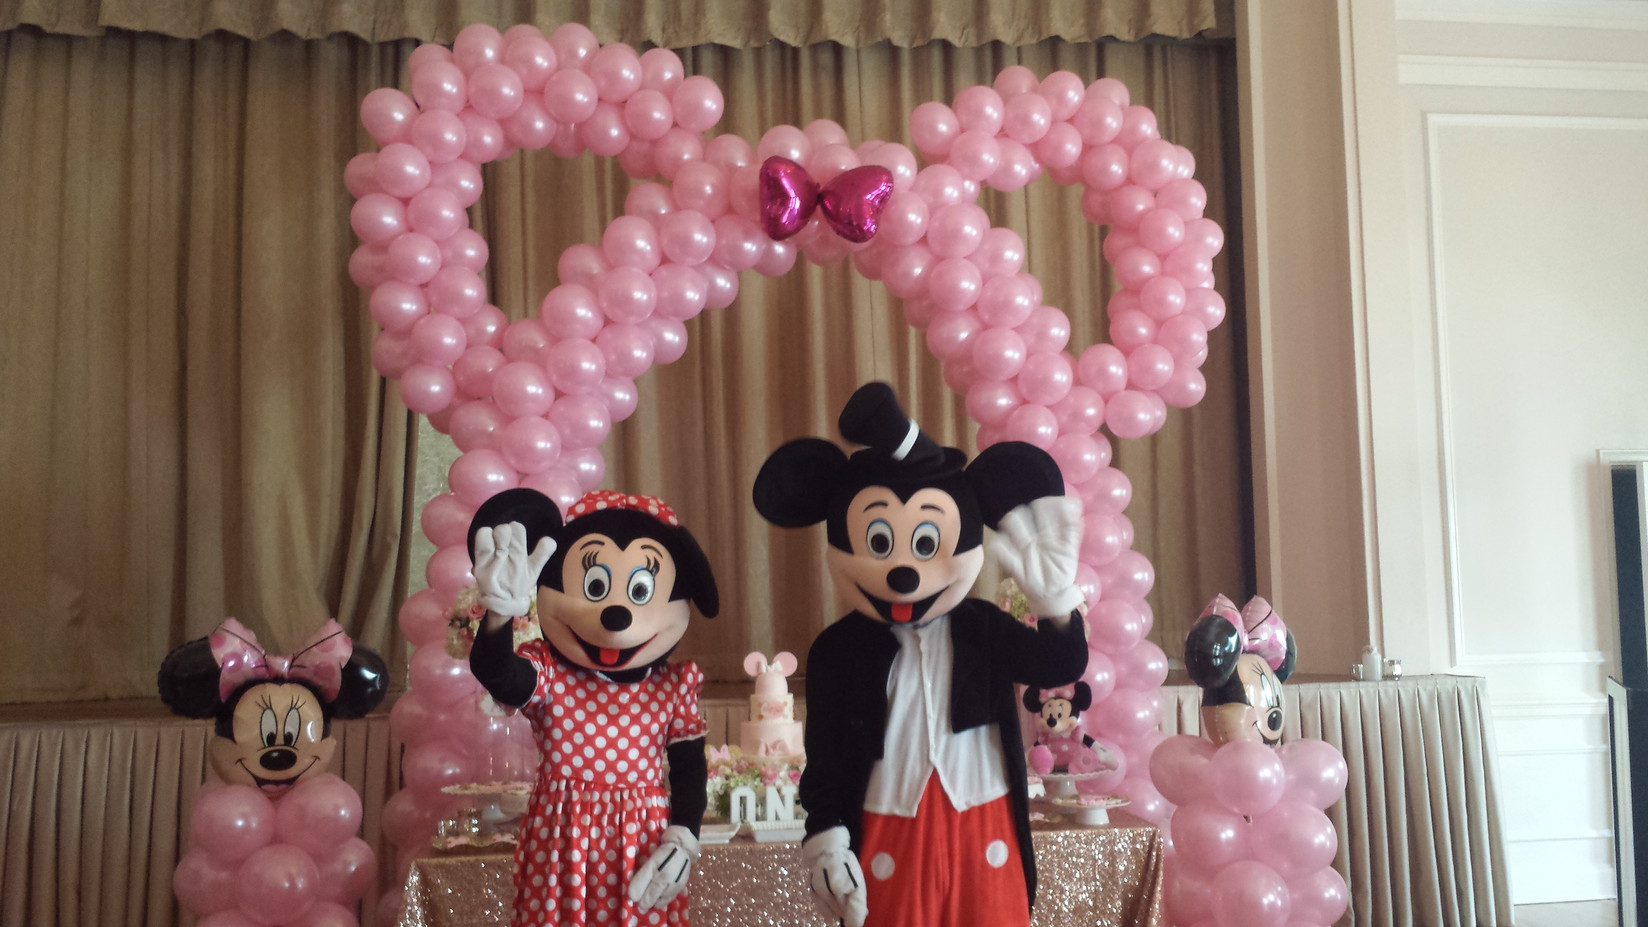 Micky-And-Minnie-Mouse-At-Birthday-Party.jpg